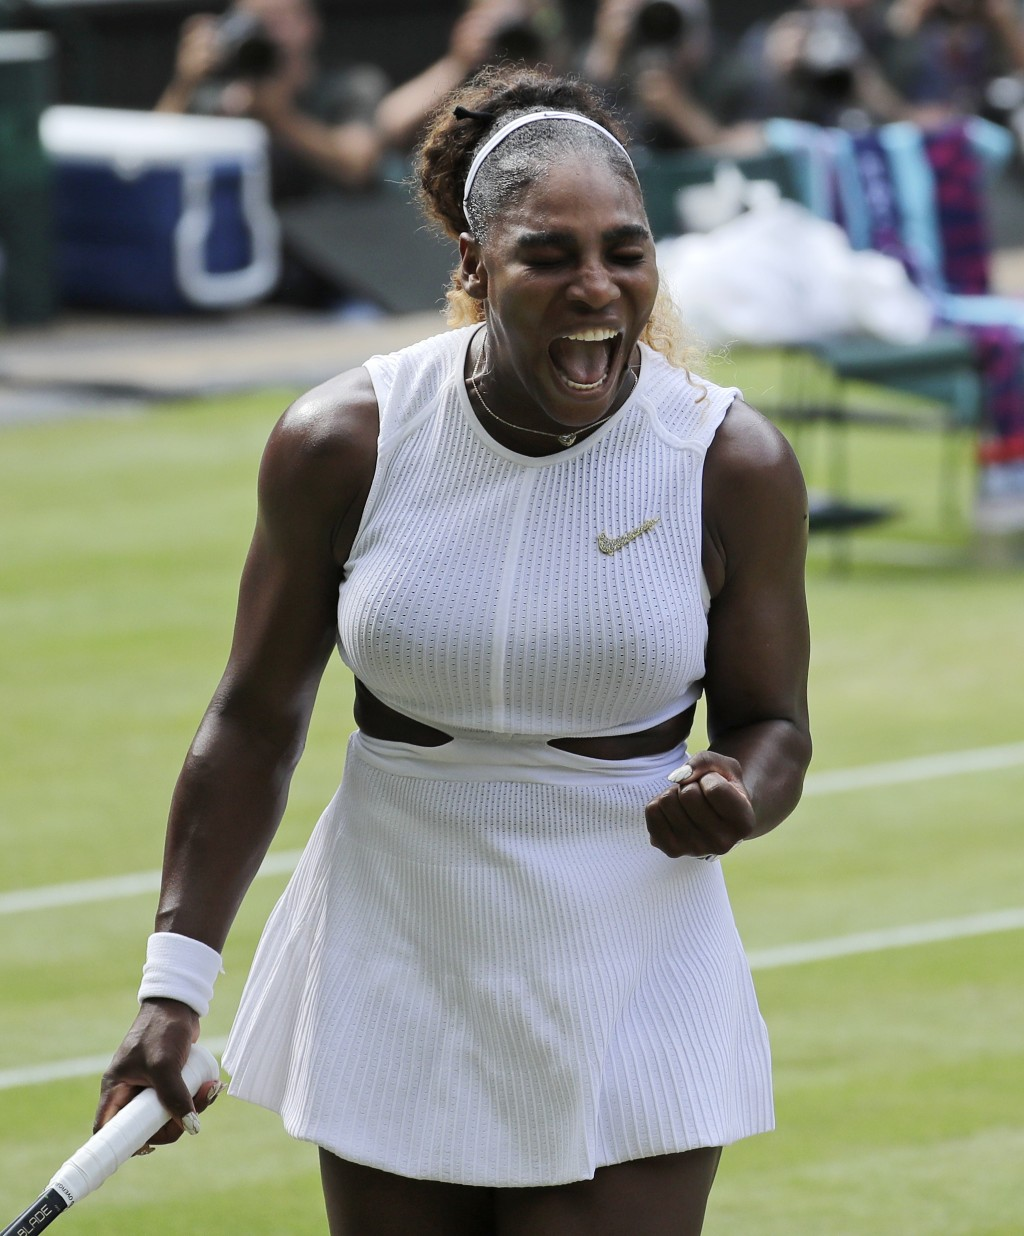 United States' Serena Williams reacts as she plays Czech Republic's Barbora Strycova in a Women's semifinal singles match on day ten of the Wimbledon ...